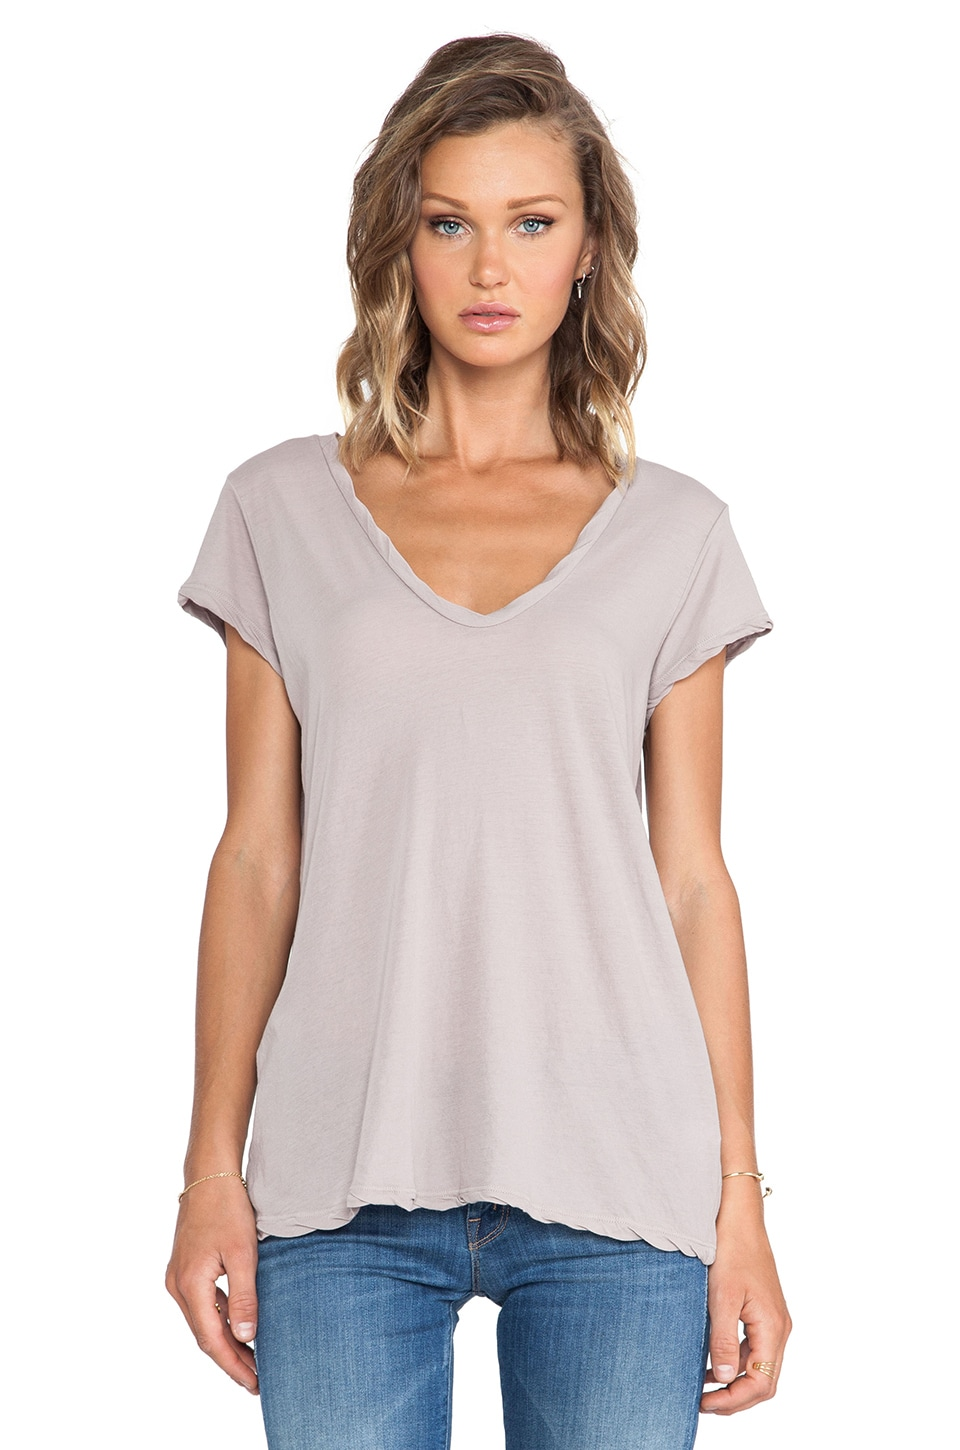 James Perse High Gauge Jersey Deep V Tee in Fossil